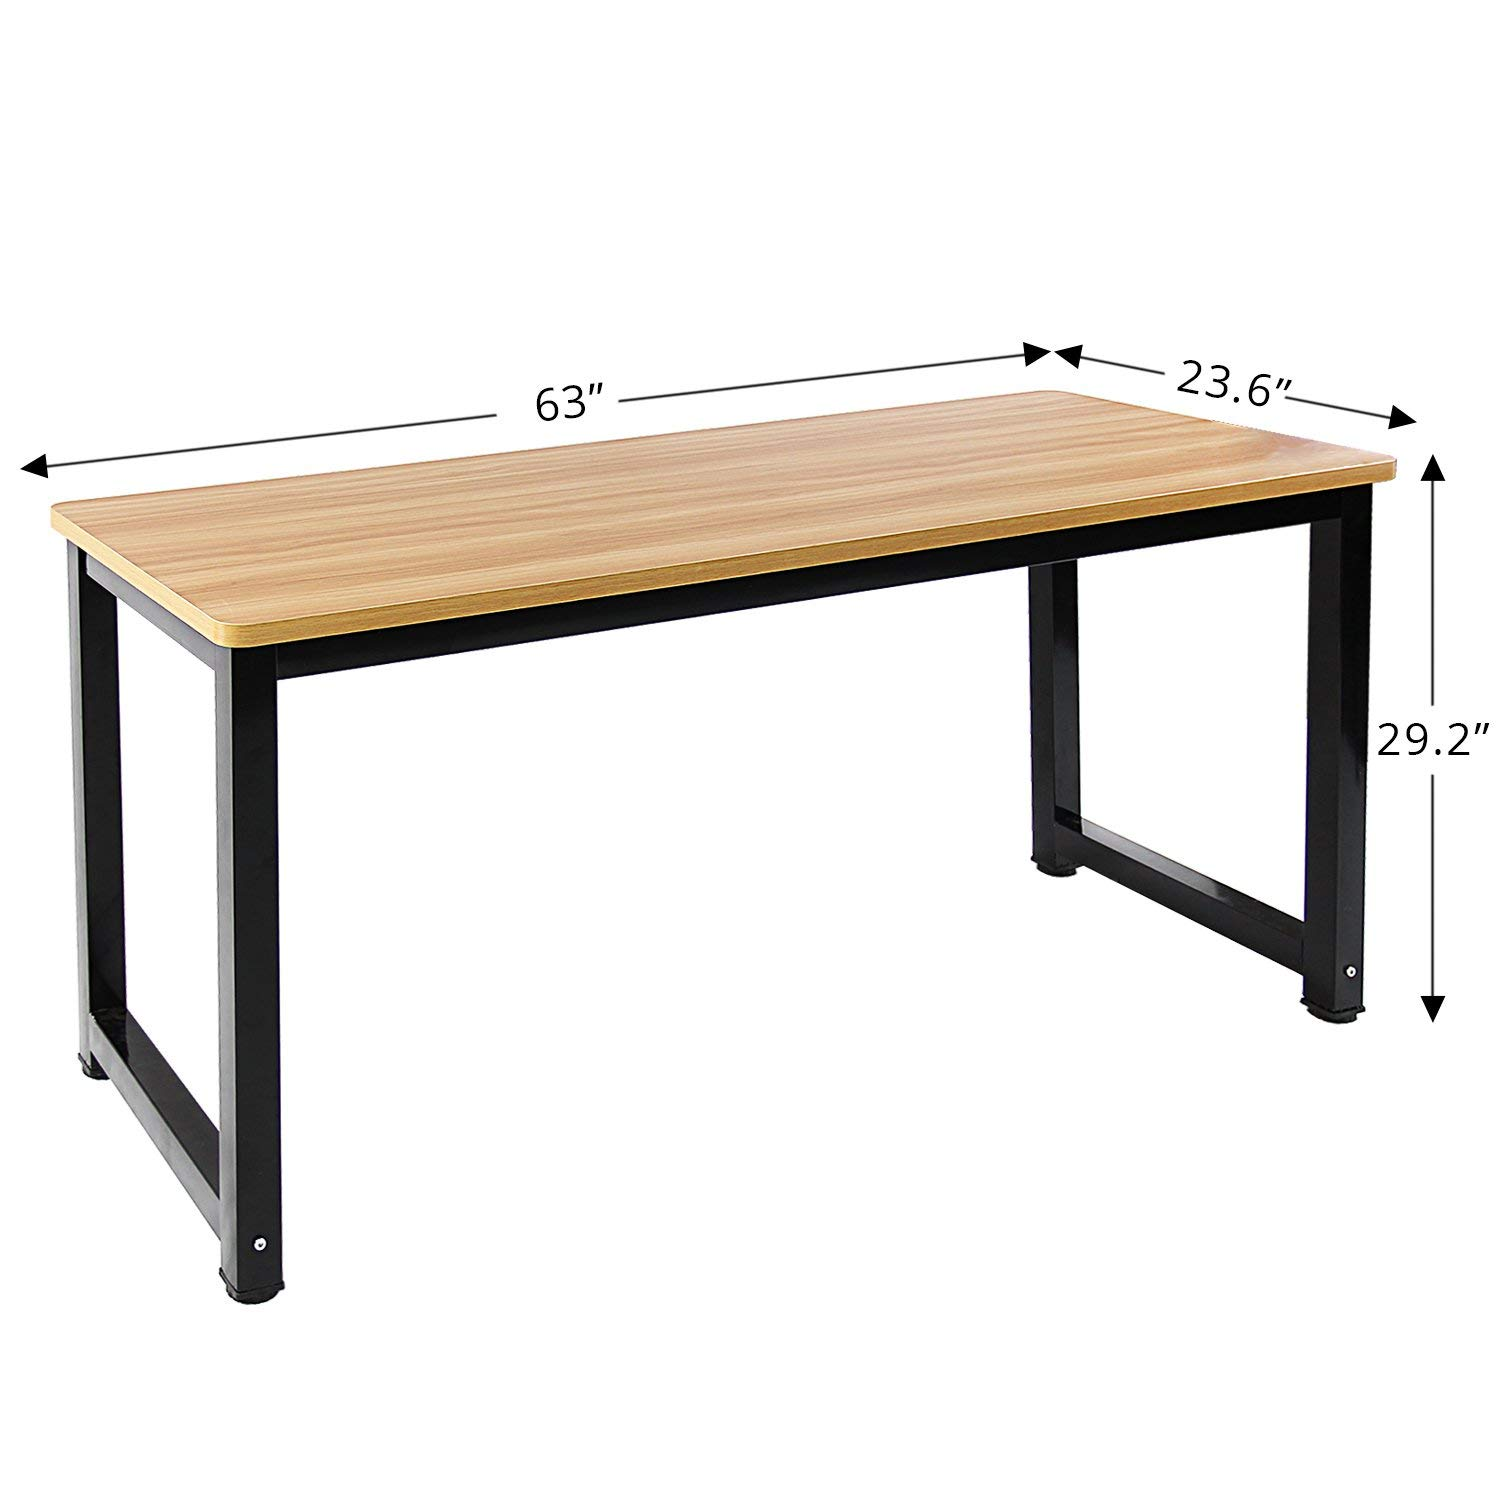 Jerry & Maggie - Professional Office Desk Wood & Steel Table Modern Plain Lap Desk with Rectangular Legs Computer Desk Personal Working Space - Natural Wood Tone | Thick Desktop Length 63""